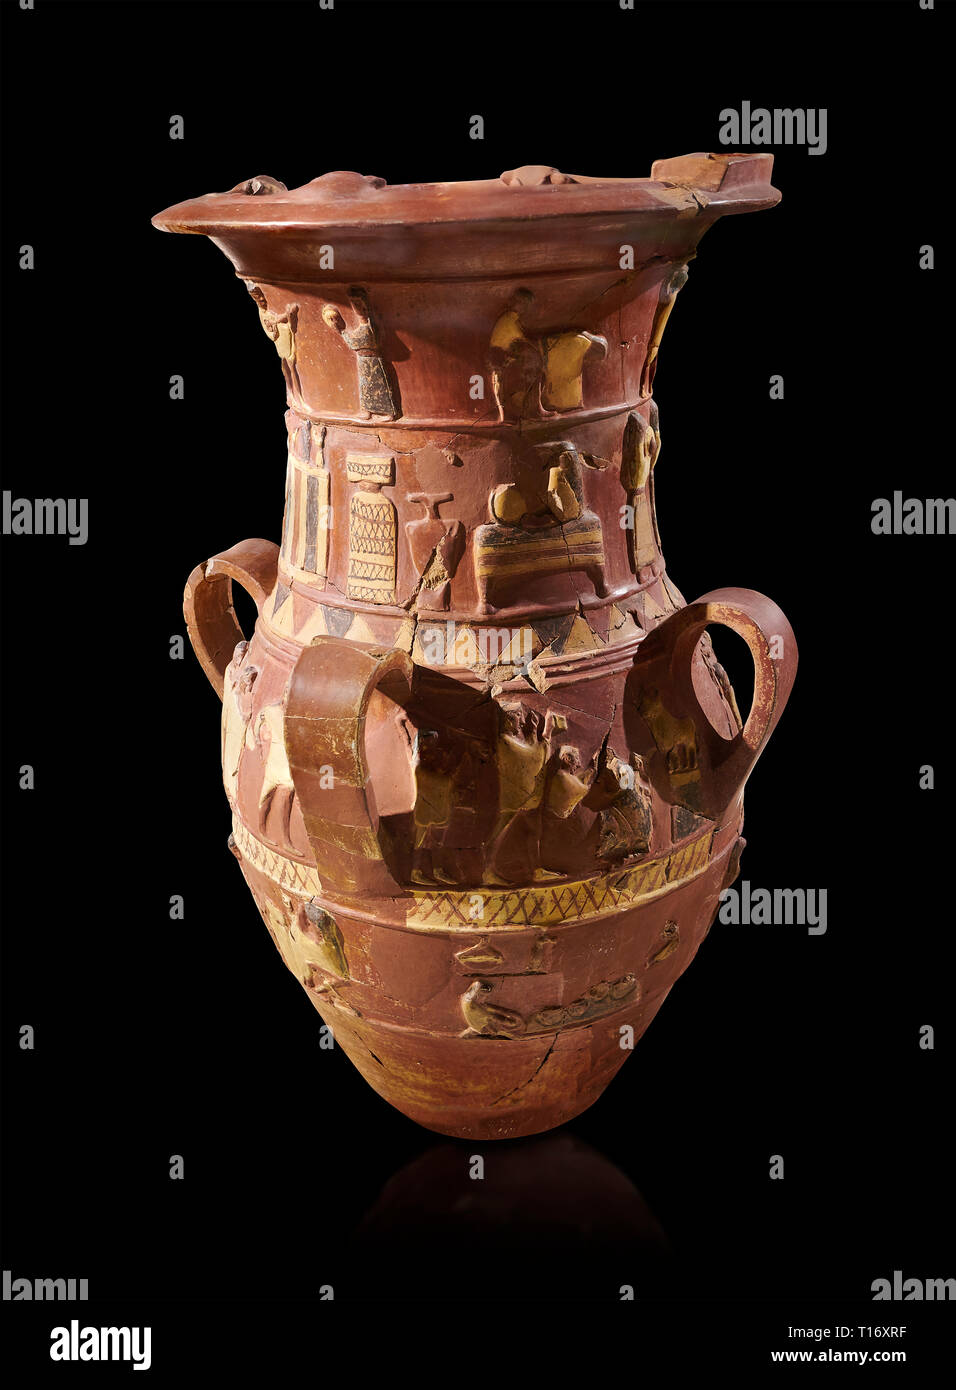 Inandik Hittite relief decorated cult libation vase with four decorative friezes featuring figures coloured in cream, red and black. In the top regist Stock Photo